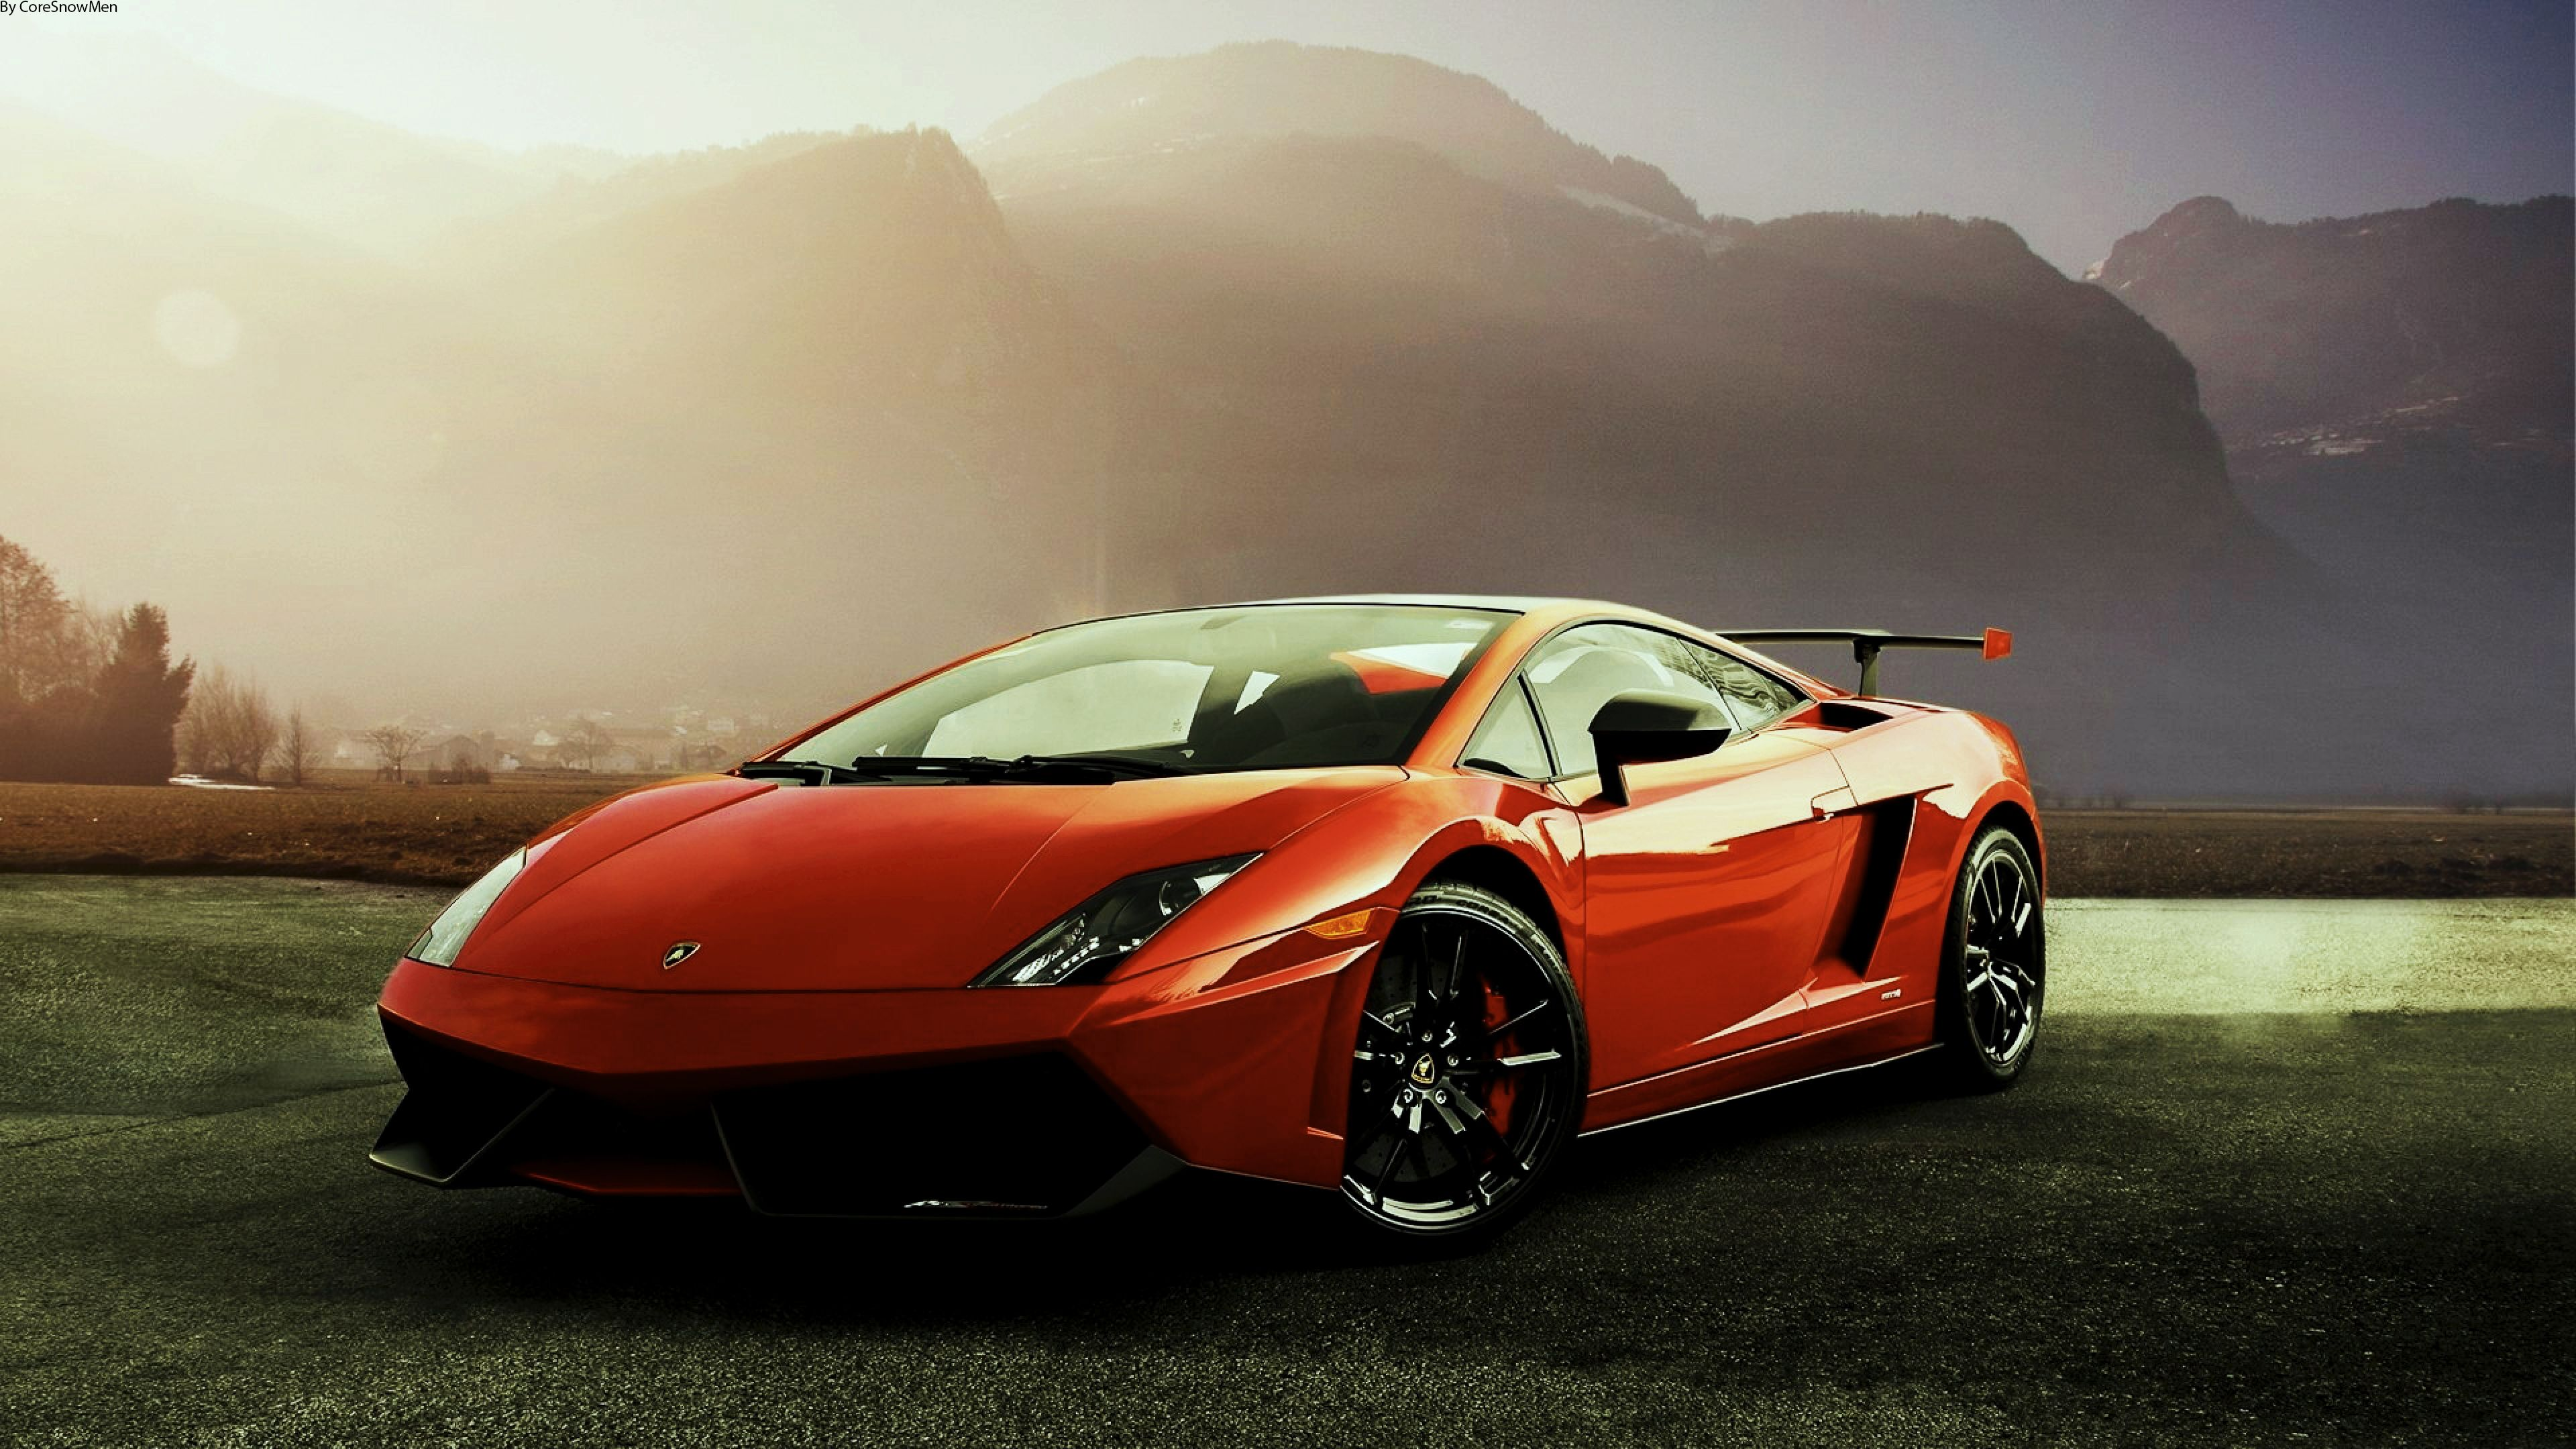 Charmant Lamborghini Gallardo Computer Wallpapers, Desktop Backgrounds